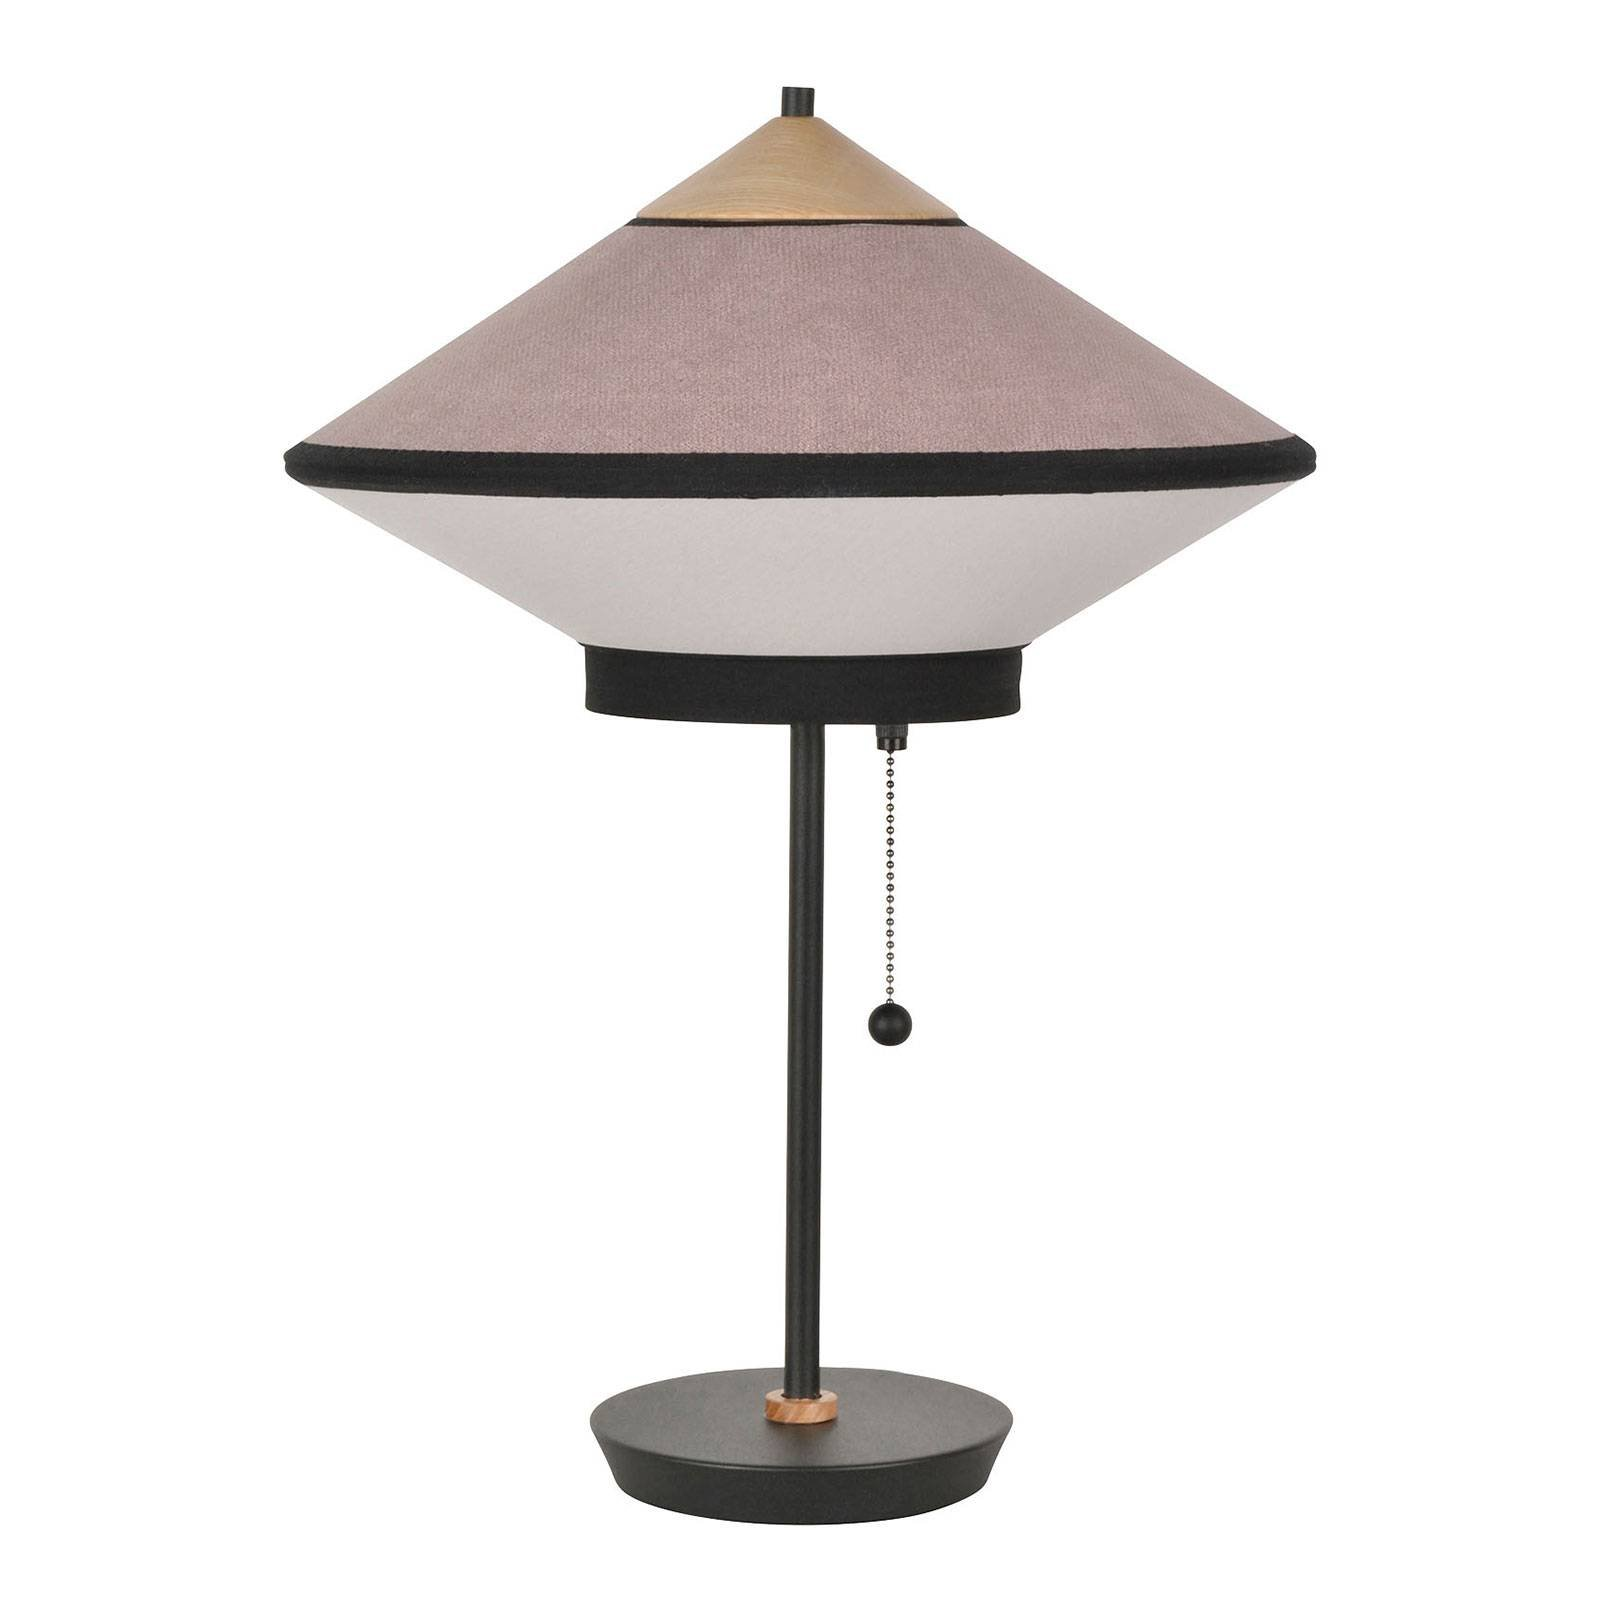 Forestier Cymbal S bordlampe, pudderrosa